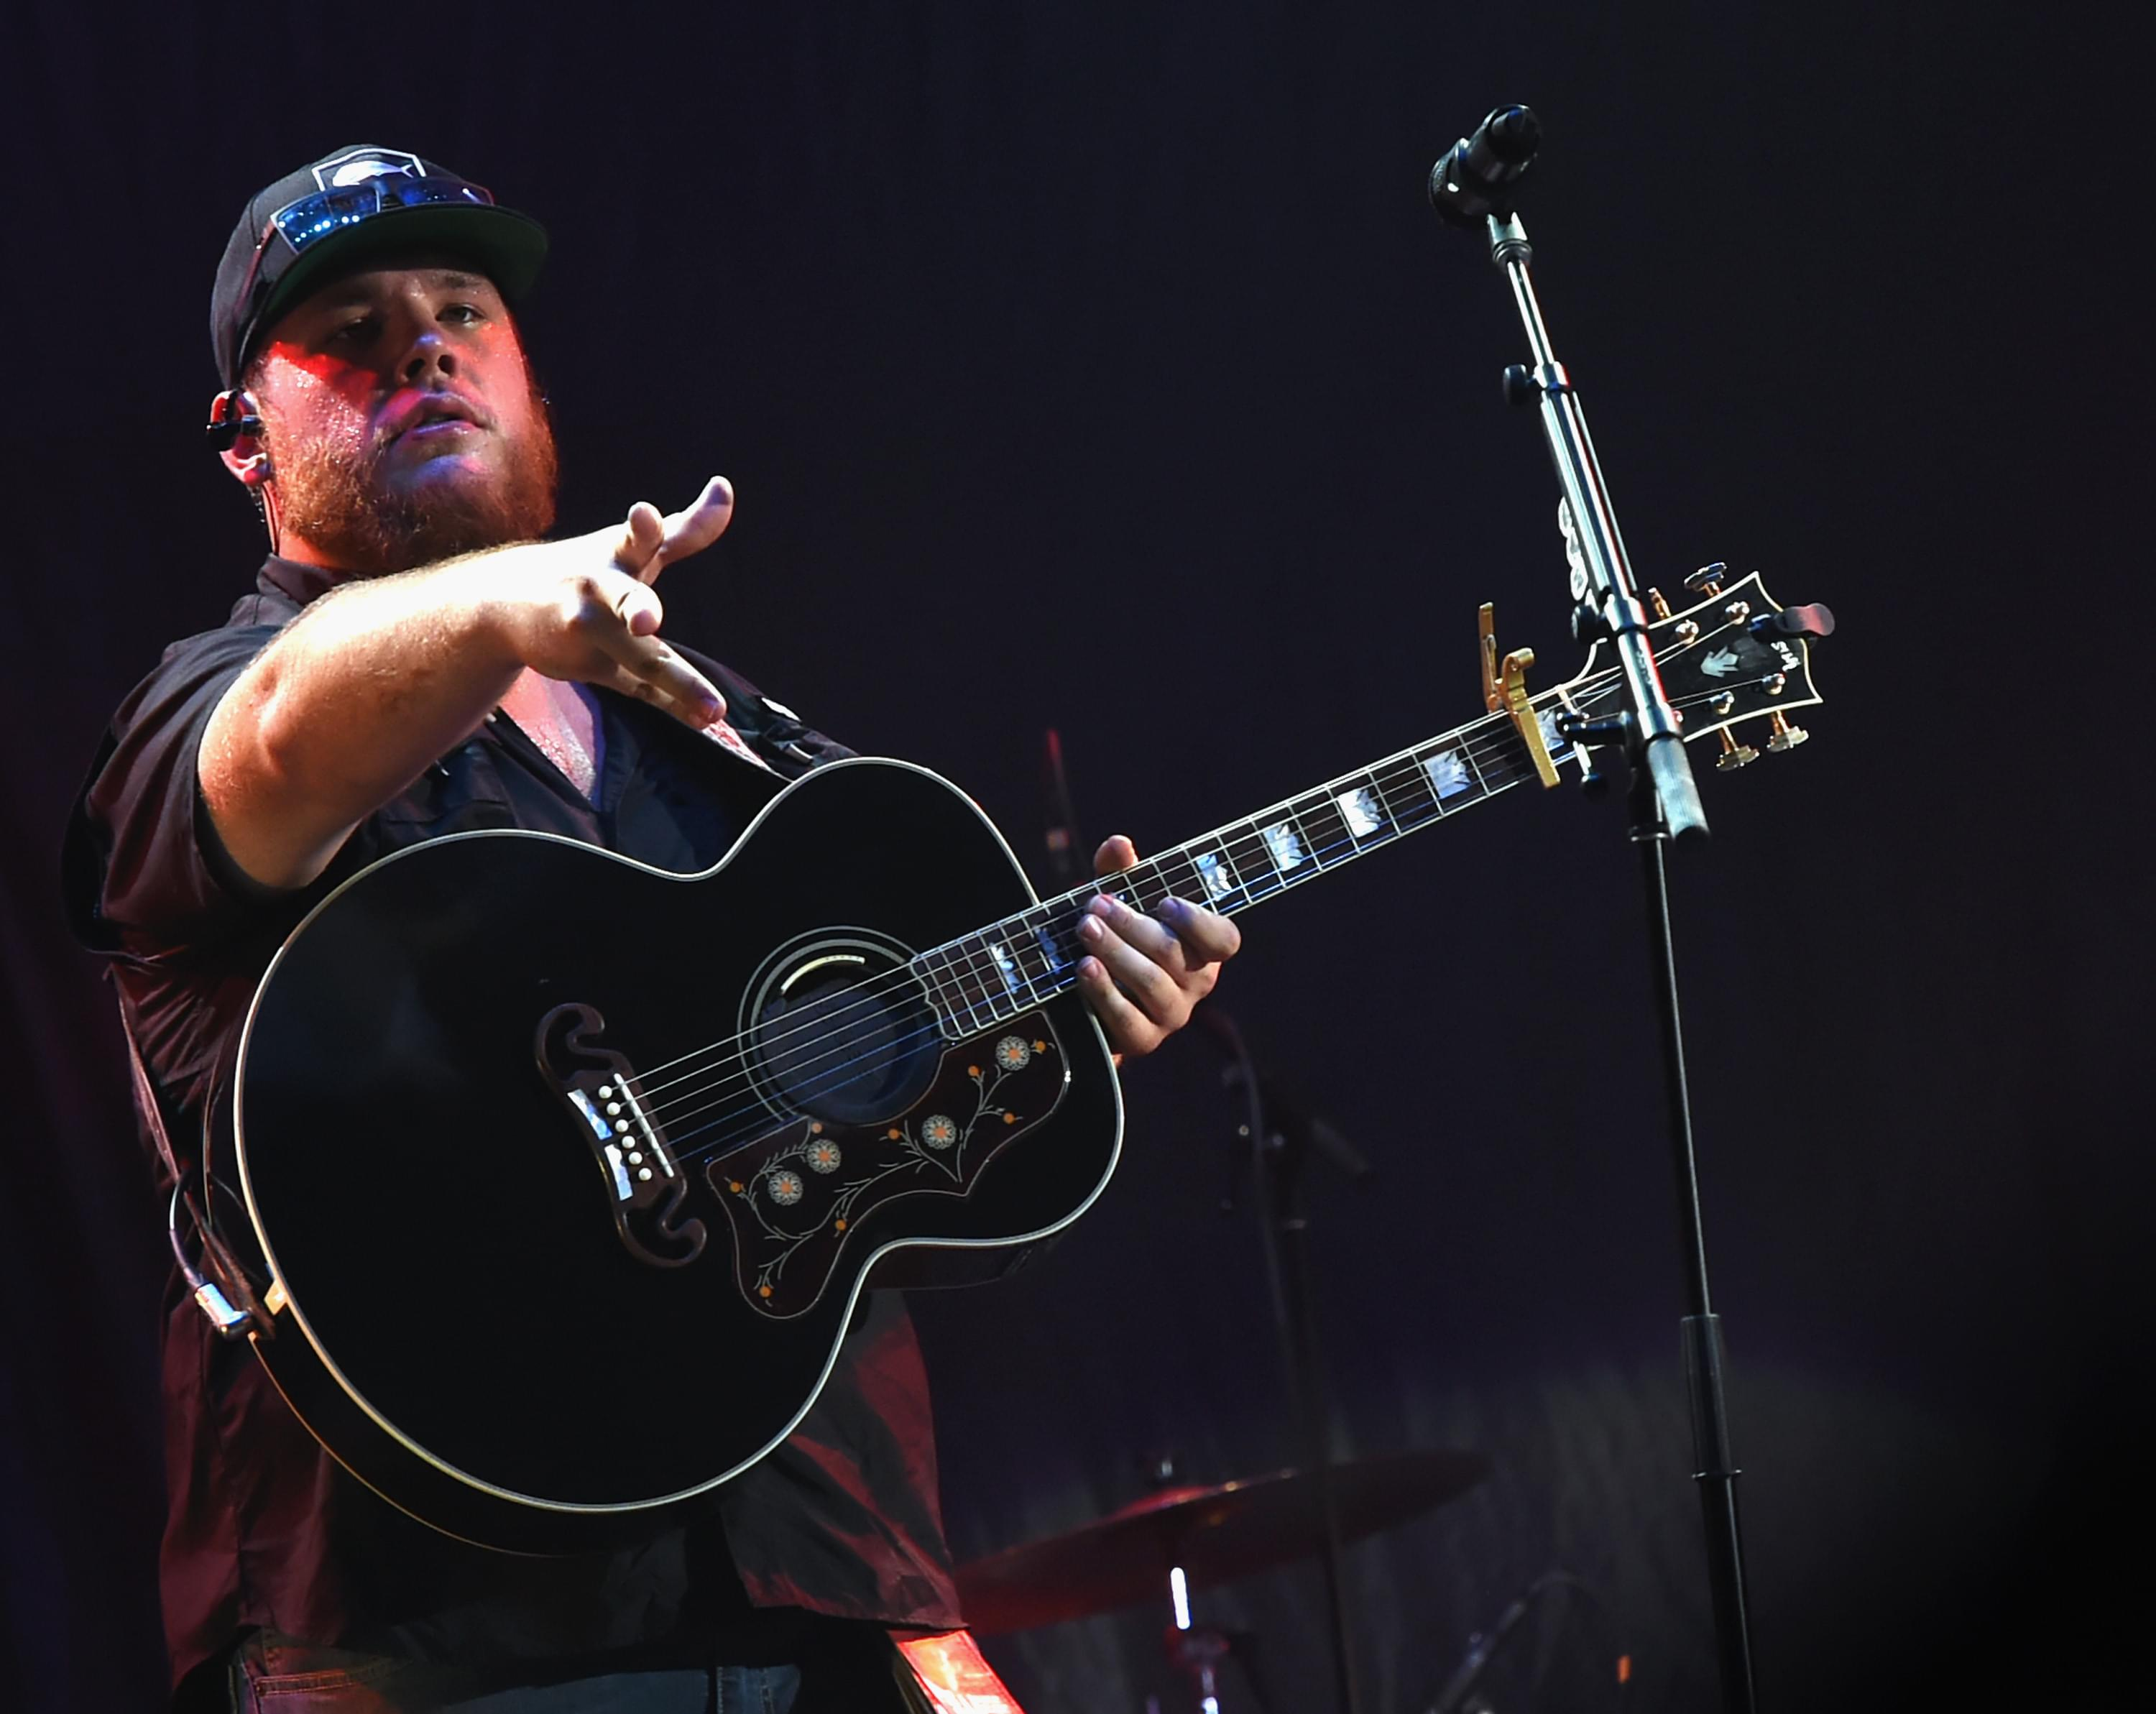 Luke Combs 'Pretty Woman' Moment [VIDEO]